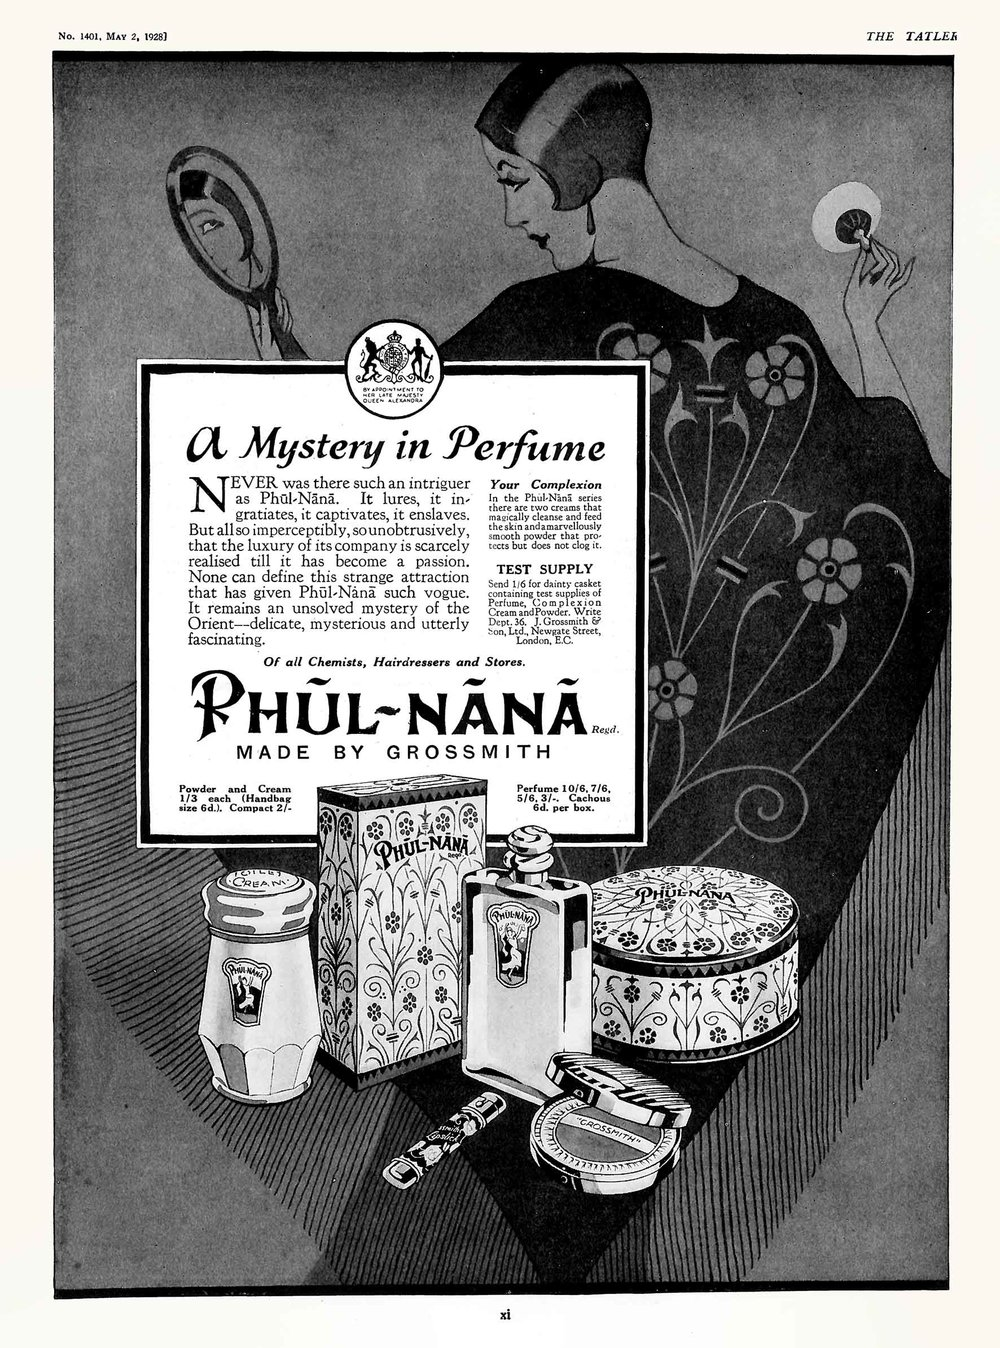 Grossmith - Phul-Nana Advert - The Tatler - 2 May 1928.jpg